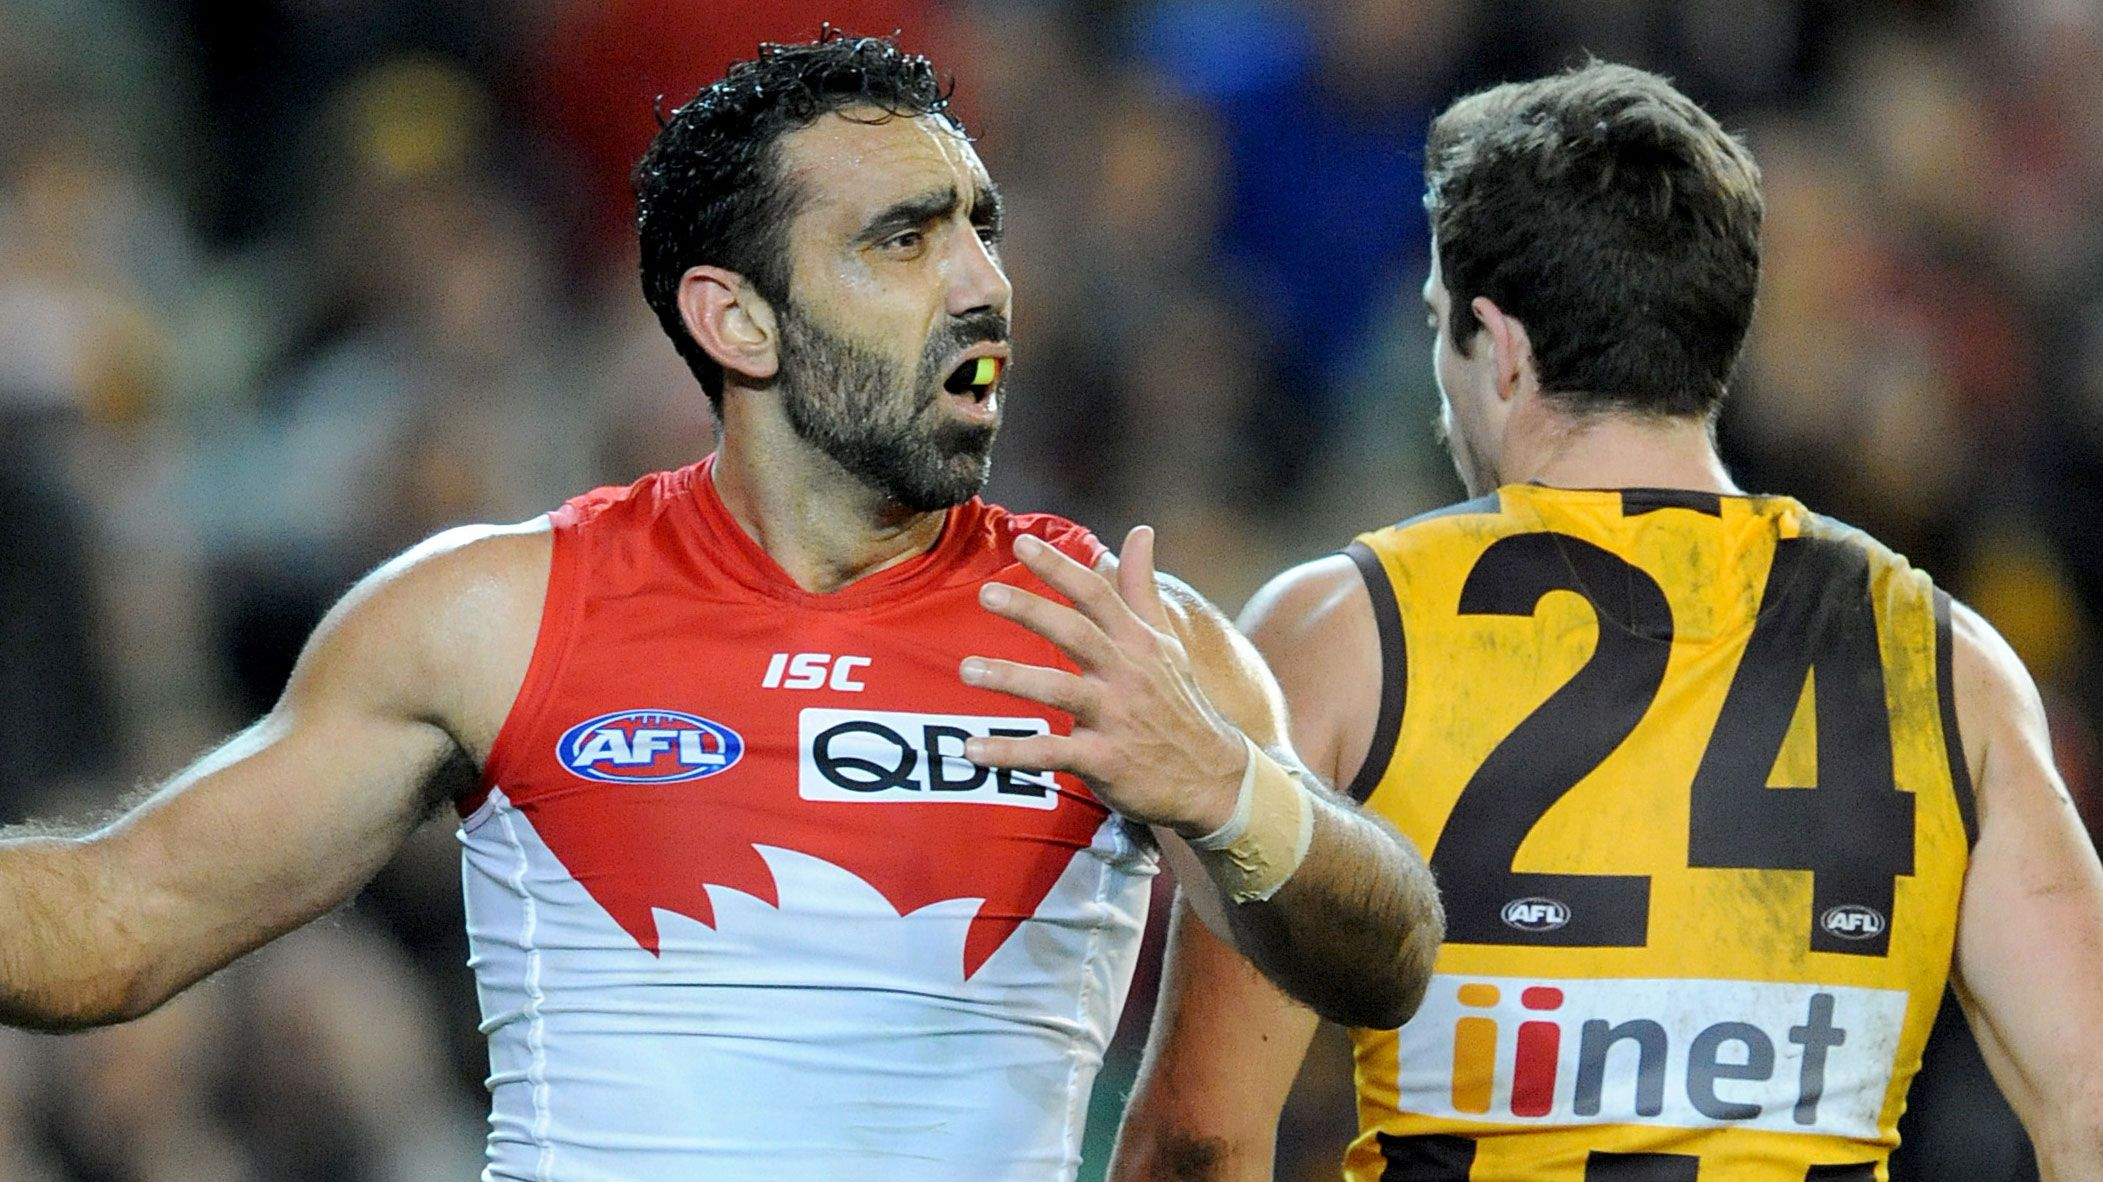 Hawthorn set to give beautiful tribute to Swans legend Adam Goodes